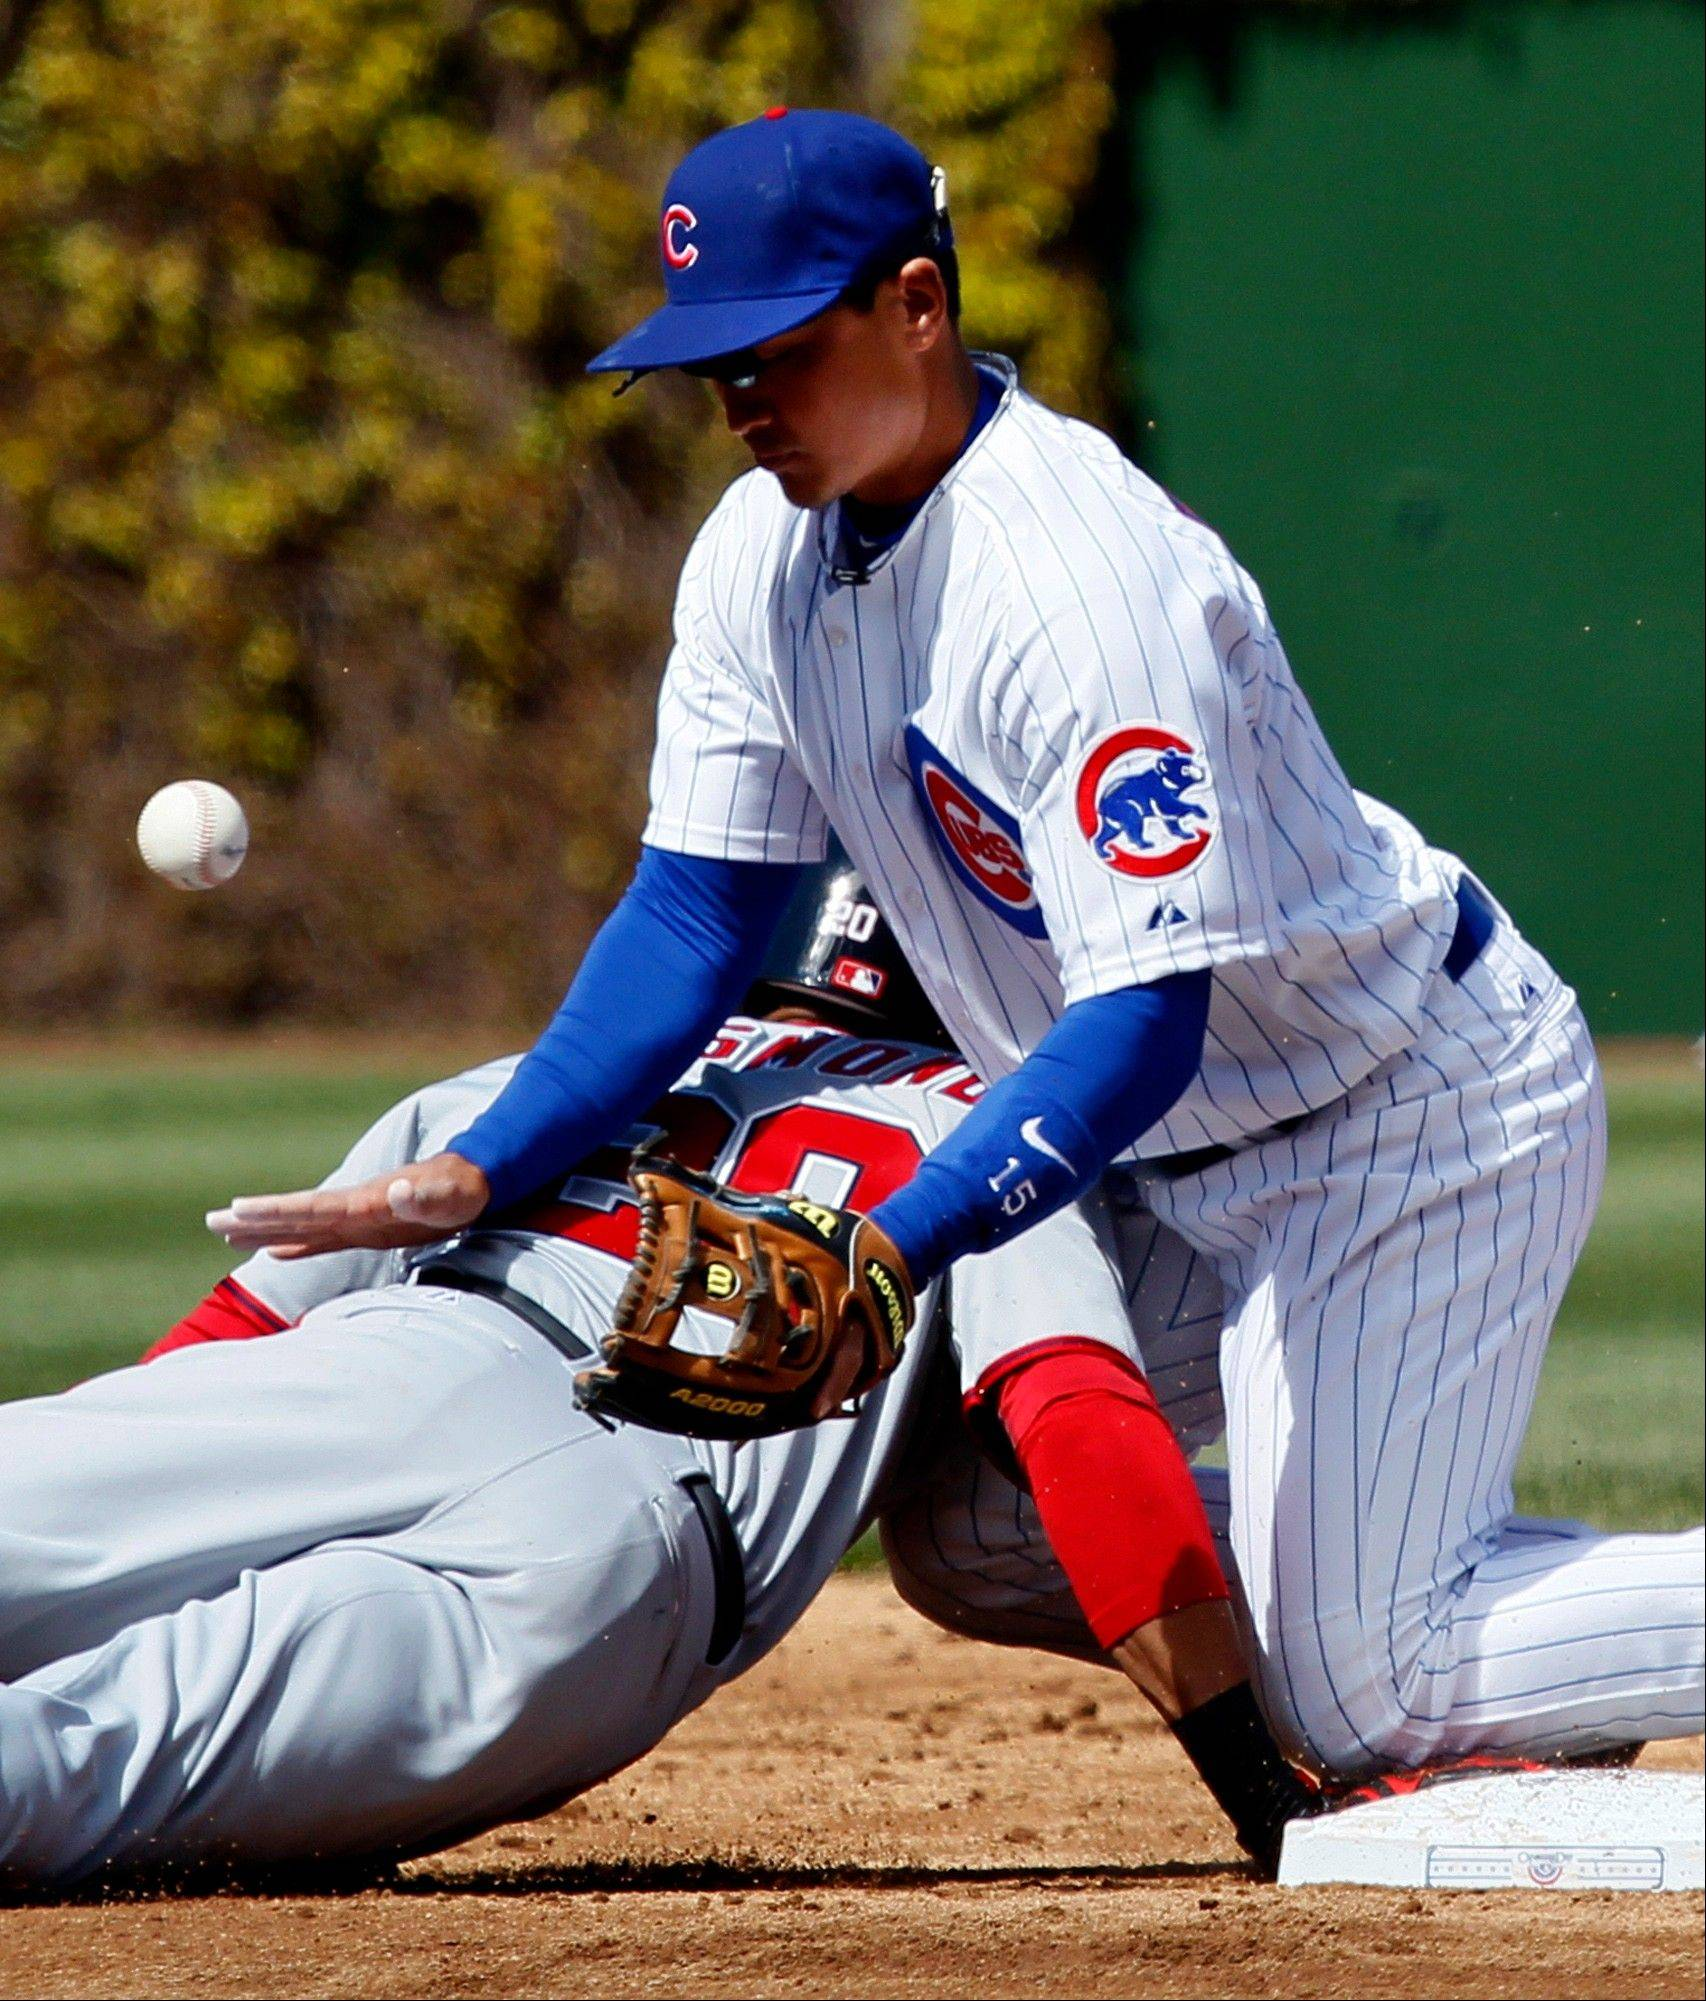 Washington Nationals' Ian Desmond, left, returns safely to second after Chicago Cubs second baseman Darwin Barney was unable to field a pick off attempt throw from pitcher Ryan Dempster during the third inning of an opening day baseball game, Thursday, April 5, 2012, in Chicago.